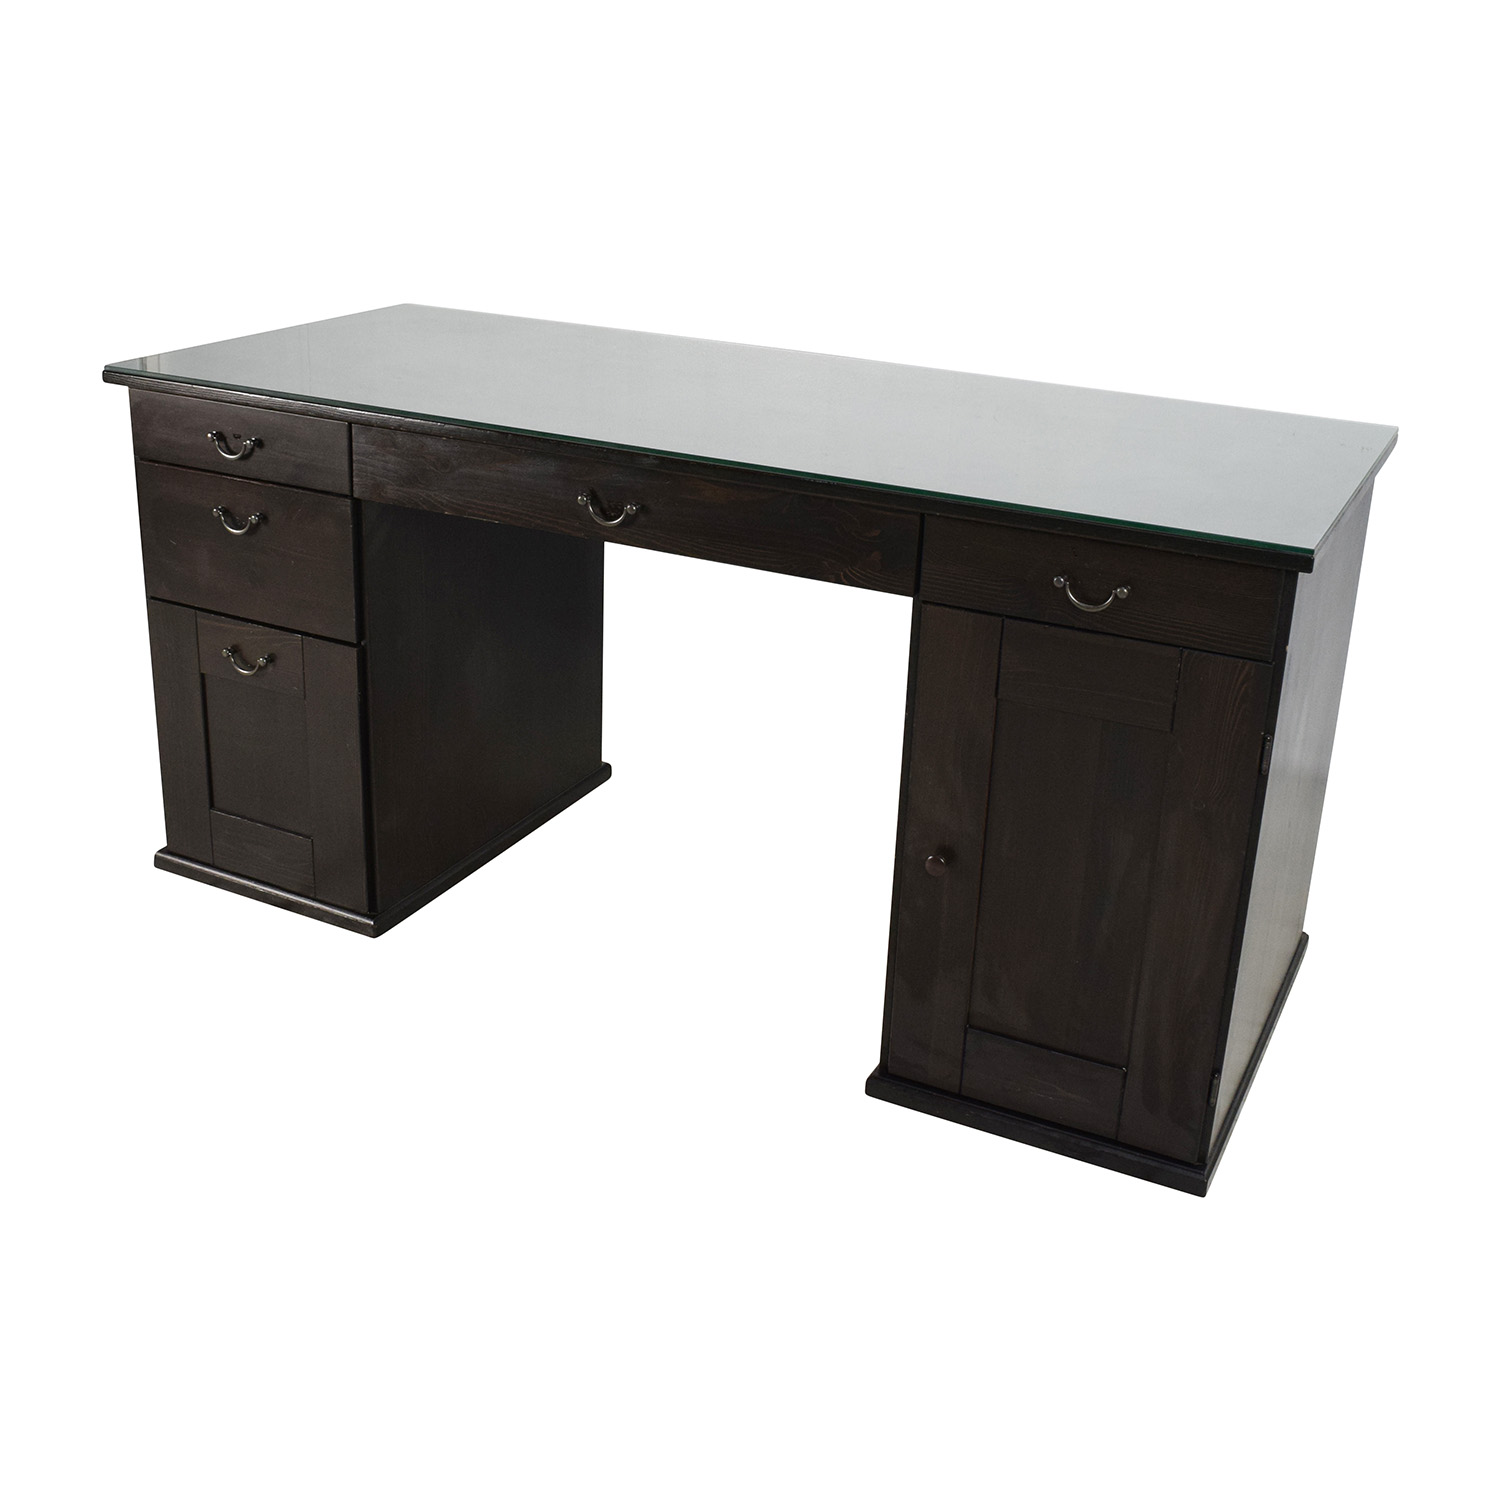 table bureau ikea table bureau ikea hilver table ikea. Black Bedroom Furniture Sets. Home Design Ideas